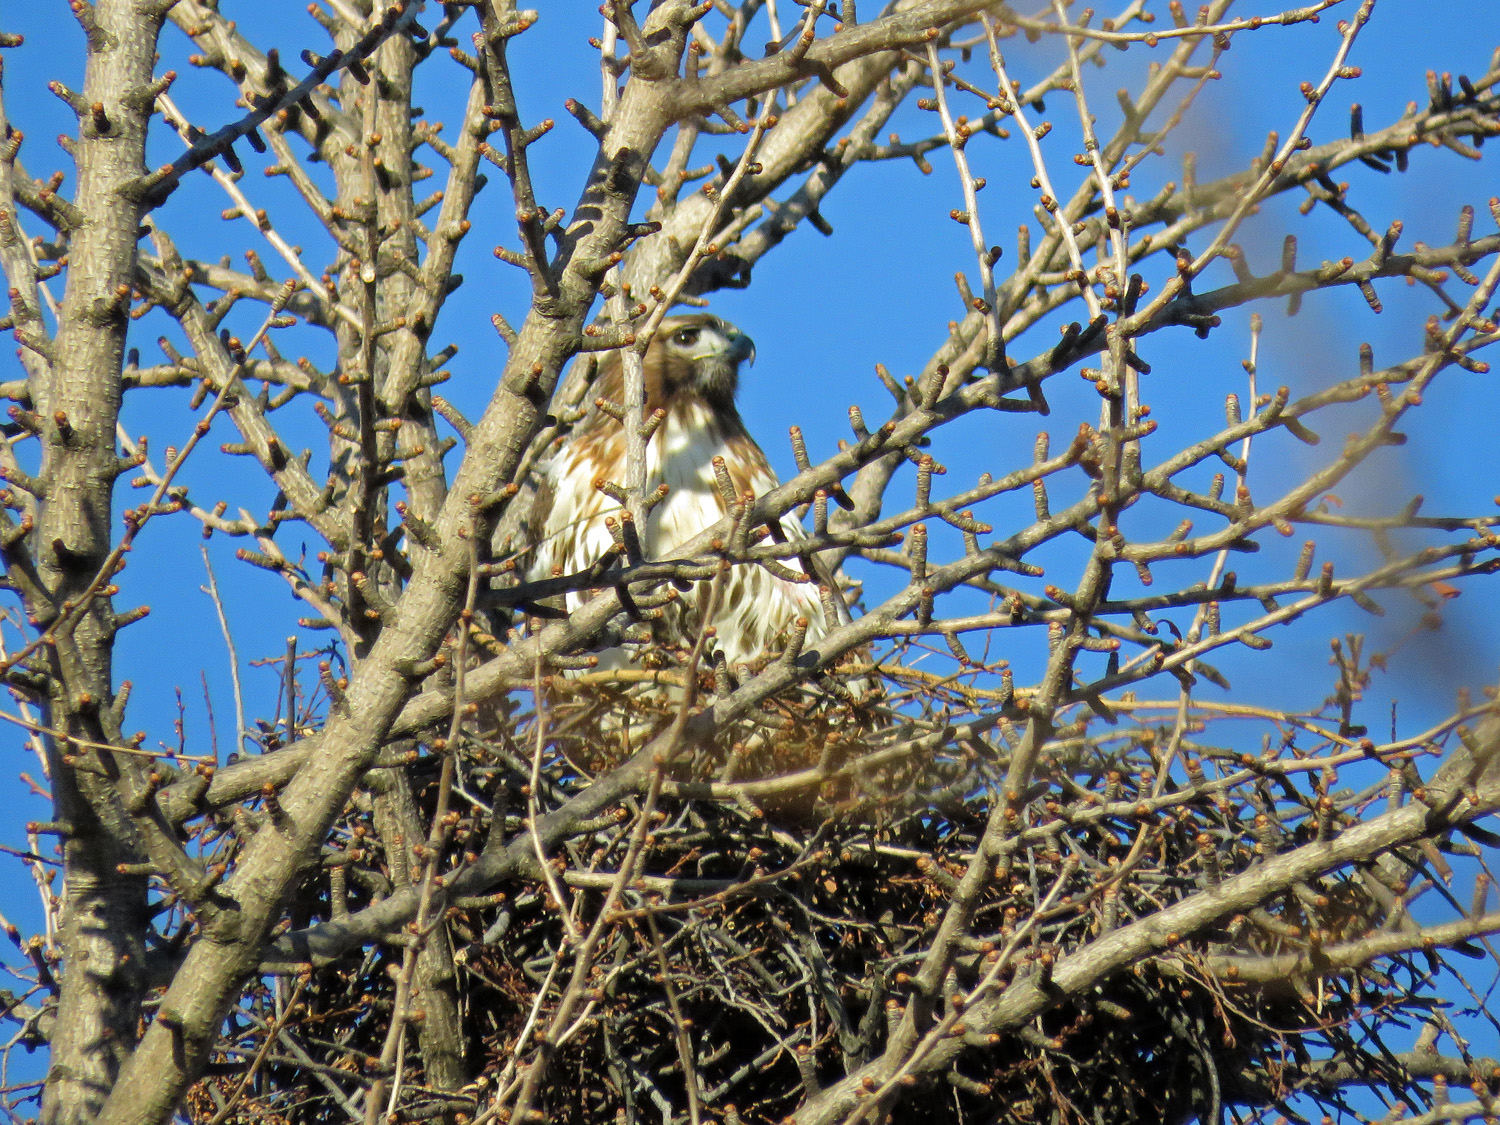 Dora on the nest, March 24